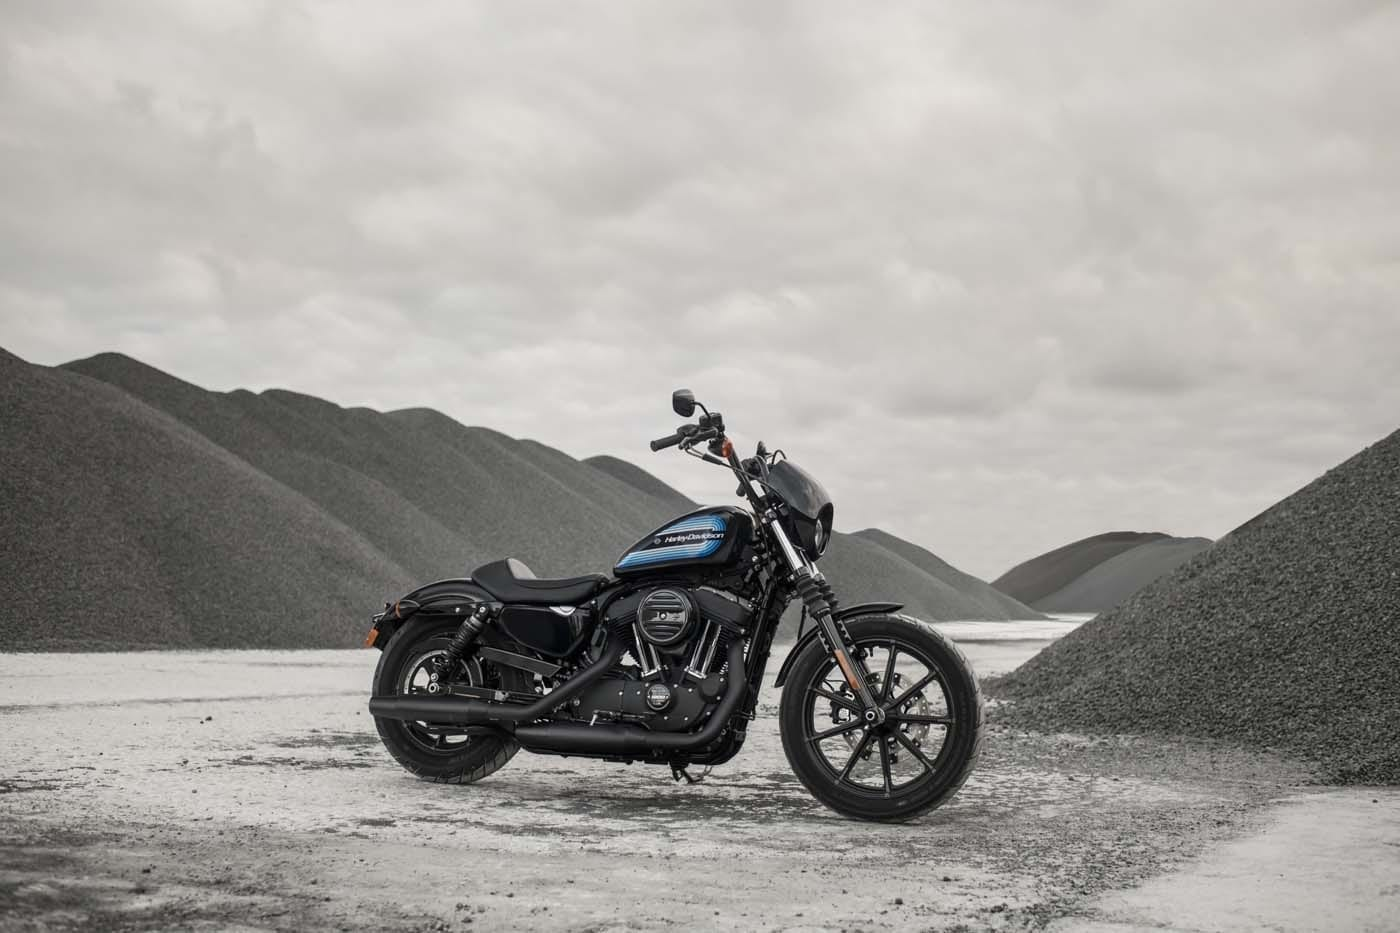 HARLEY-DAVIDSON FORTY-EIGHT SPECIAL AND IRON 1200 SPORTSTERS 11